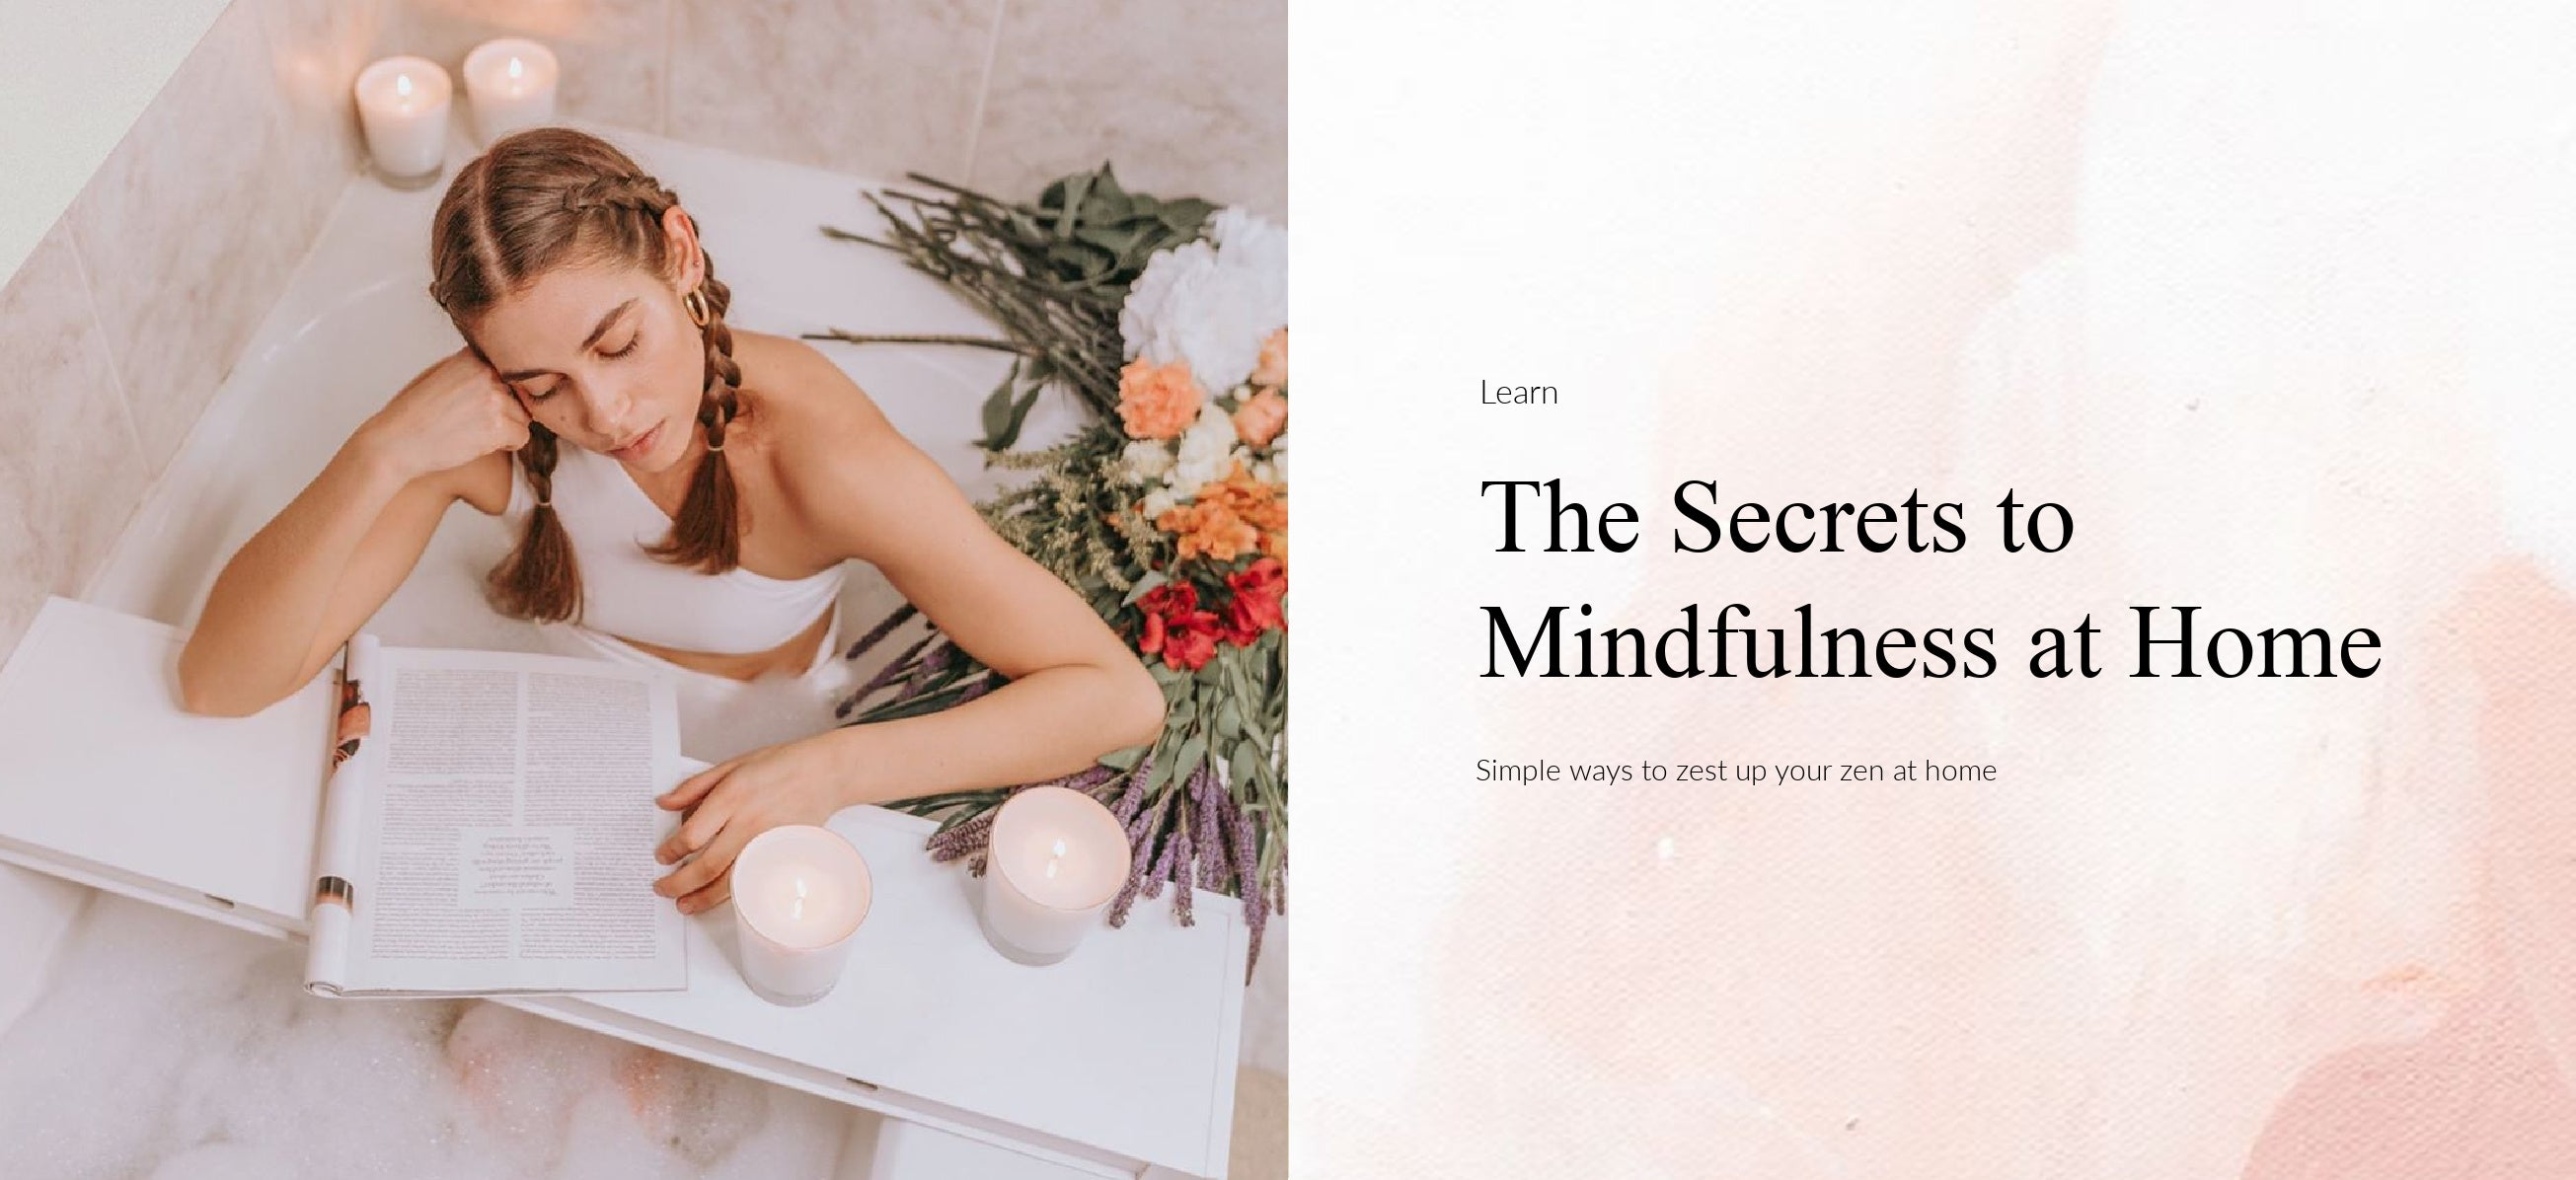 Secrets to Mindfulness at Home with Fragrance